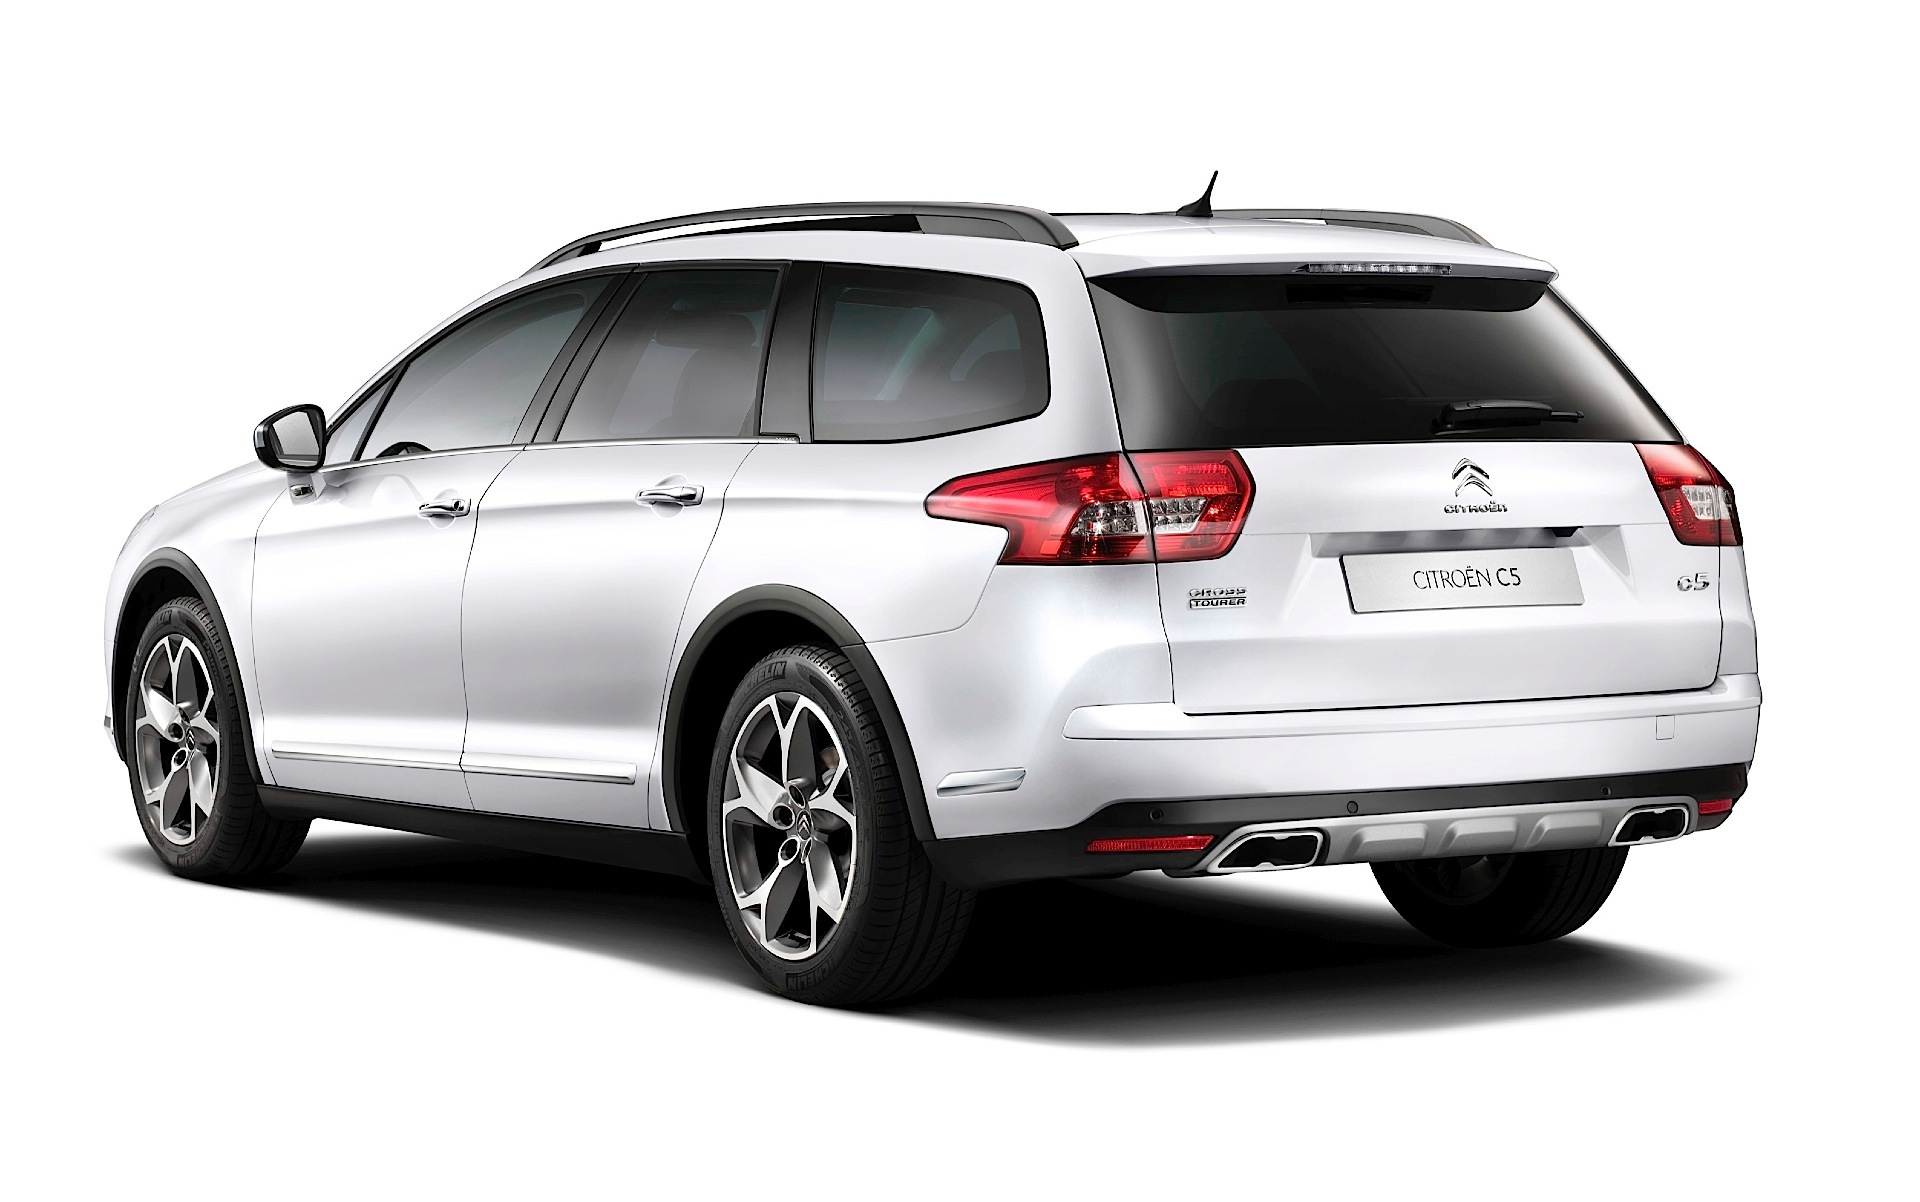 citroen c5 crosstourer specs 2014 2015 2016 2017 2018 autoevolution. Black Bedroom Furniture Sets. Home Design Ideas